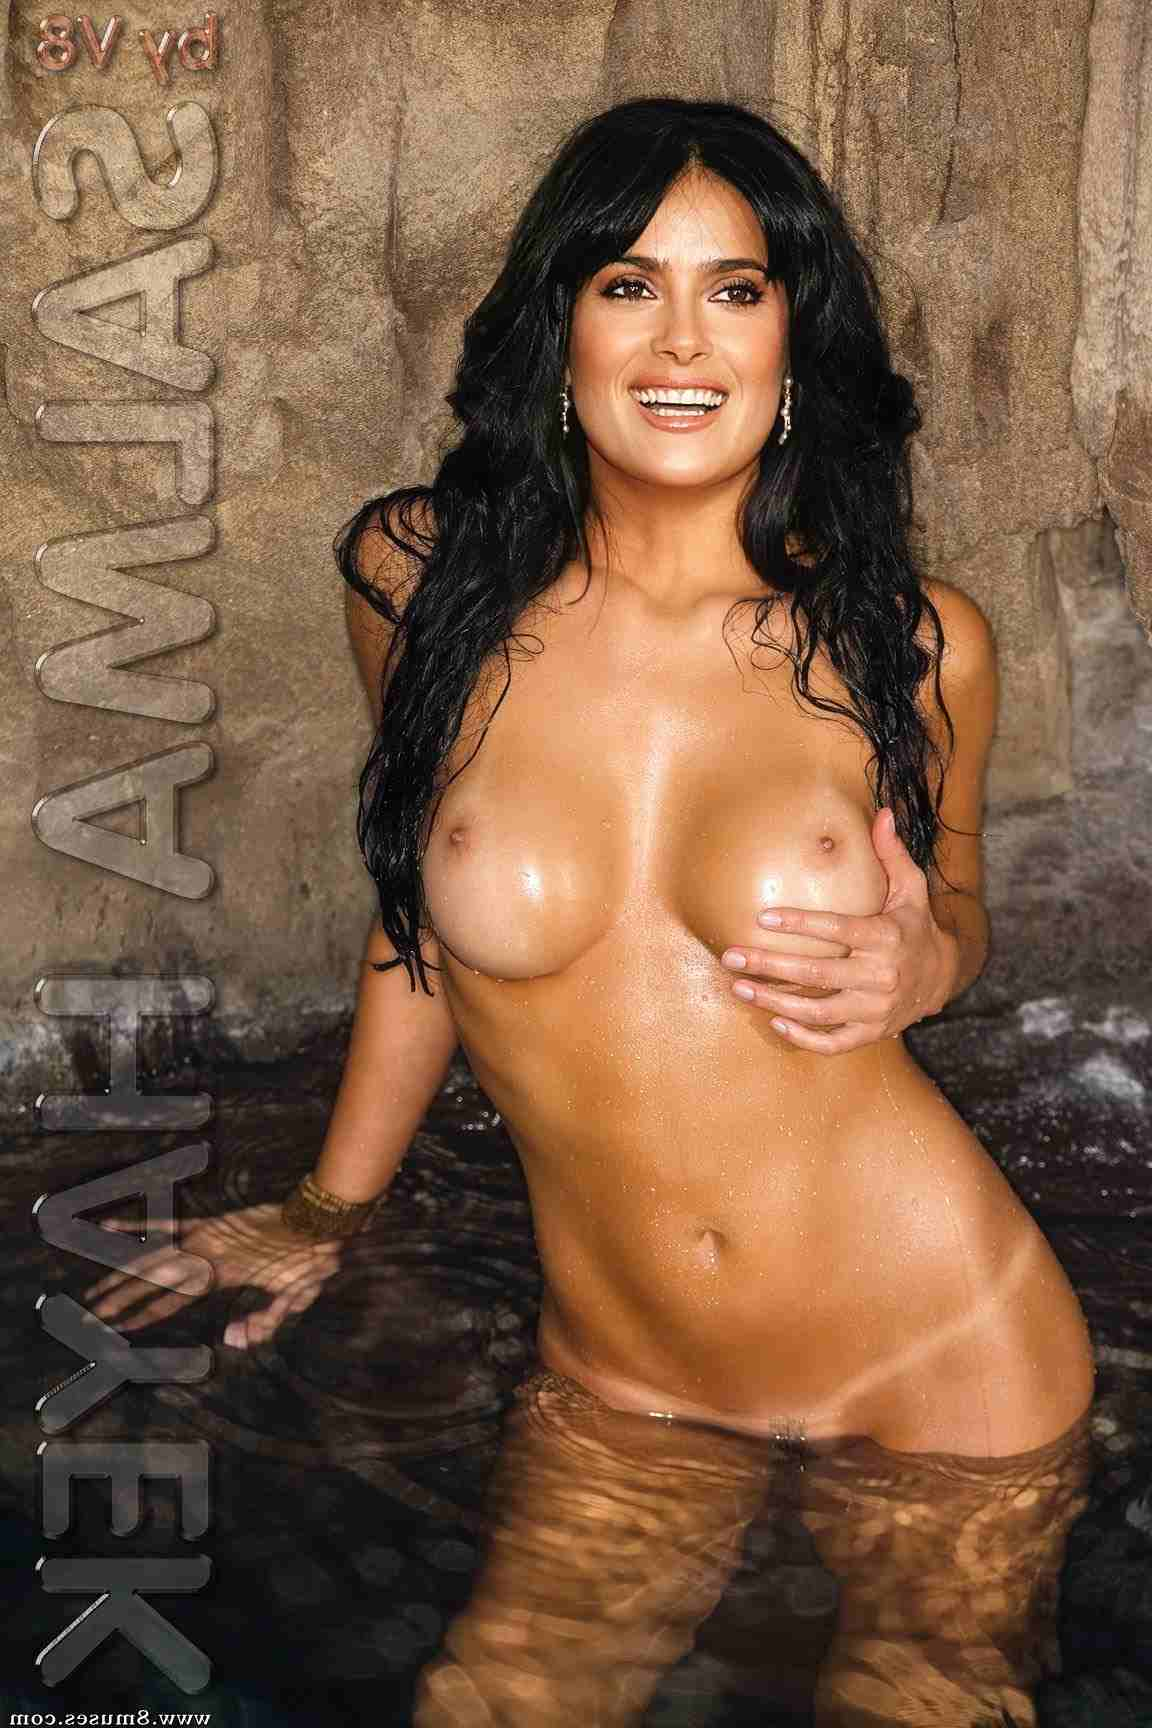 Fake-Celebrities-Sex-Pictures/Salma-Hayek Salma_Hayek__8muses_-_Sex_and_Porn_Comics_70.jpg